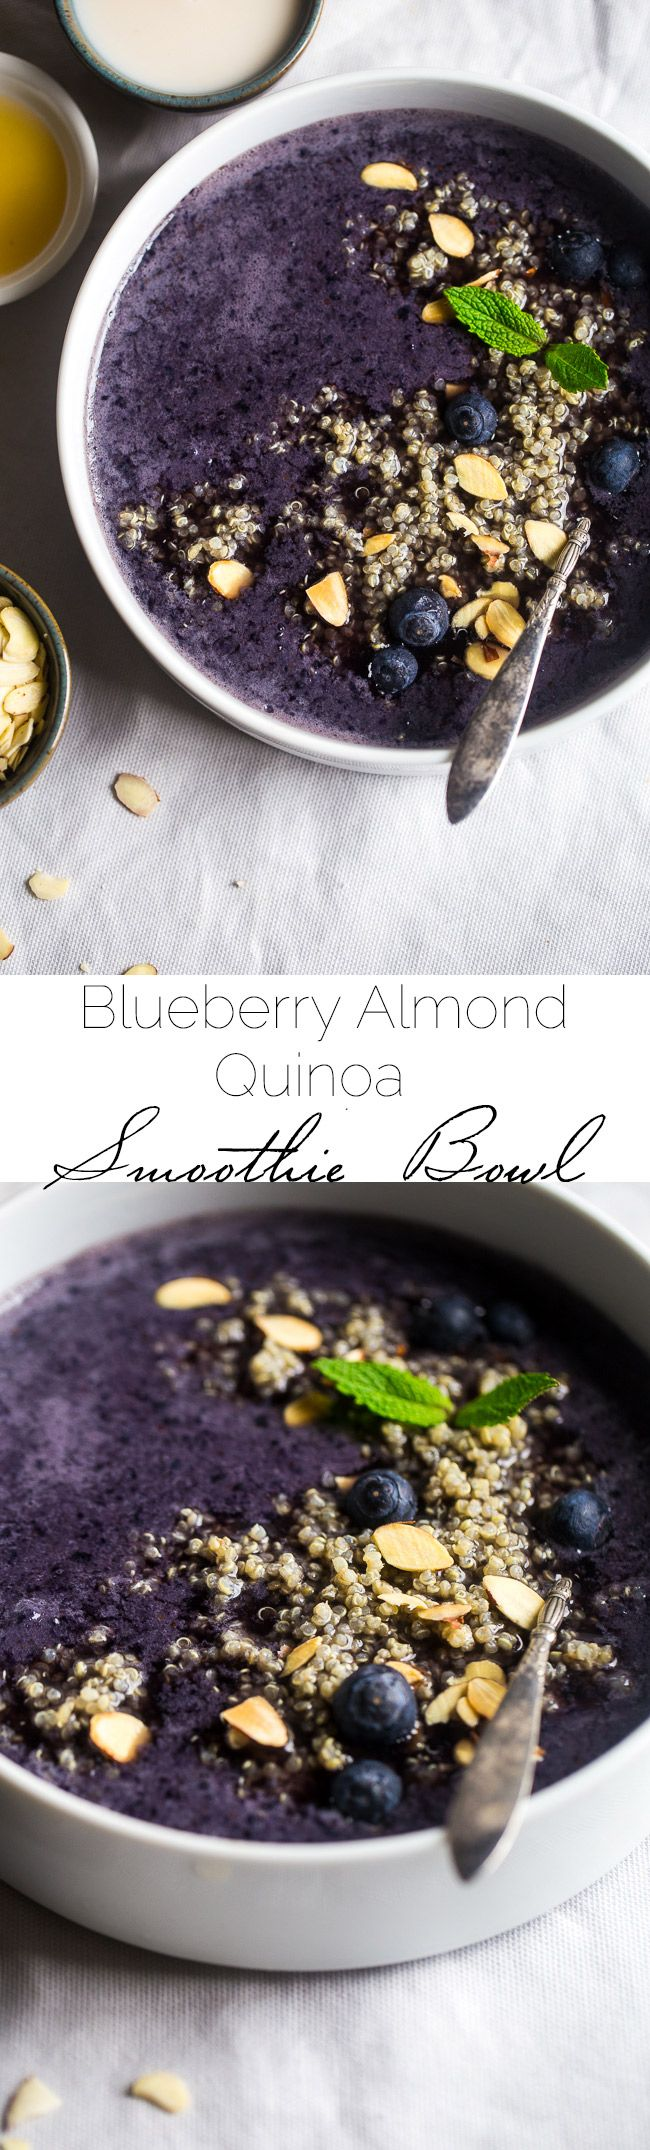 Blueberry Almond Breakfast Quinoa Smoothie Bowl – Quinoa made with vanilla almond milk and mixed with a blueberry smoothie for a quick and easy breakfast that is healthy, dairy/gluten free and loaded with superfoods! | Foodfaithfitness.com | @FoodFaithFit #ad